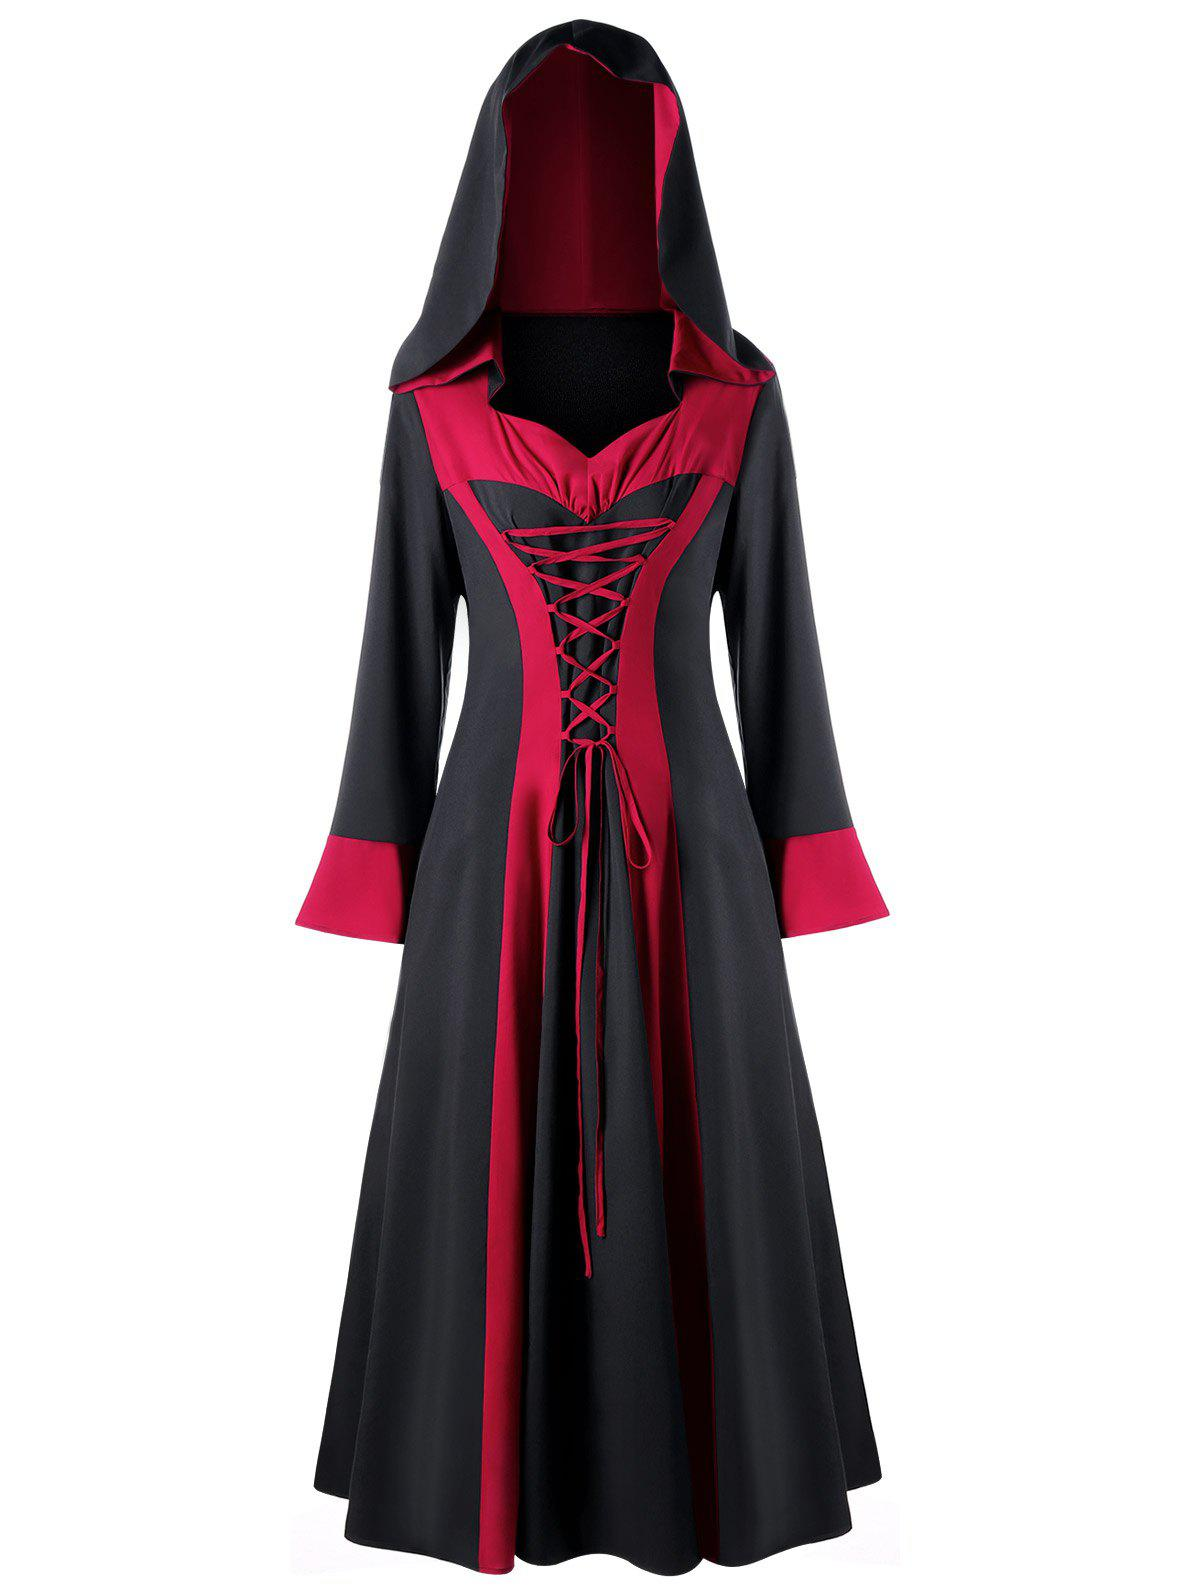 Plus Size Flare Sleeve Two Tone Lace Up Hooded DressWOMEN<br><br>Size: 5XL; Color: BLACK&amp;RED; Style: Casual; Material: Polyester,Spandex; Silhouette: A-Line; Dresses Length: Ankle-Length; Neckline: Hooded; Sleeve Type: Flare Sleeve; Sleeve Length: Long Sleeves; Embellishment: Criss-Cross; Pattern Type: Others; With Belt: No; Season: Fall,Spring,Winter; Weight: 0.4500kg; Package Contents: 1 x Dress;